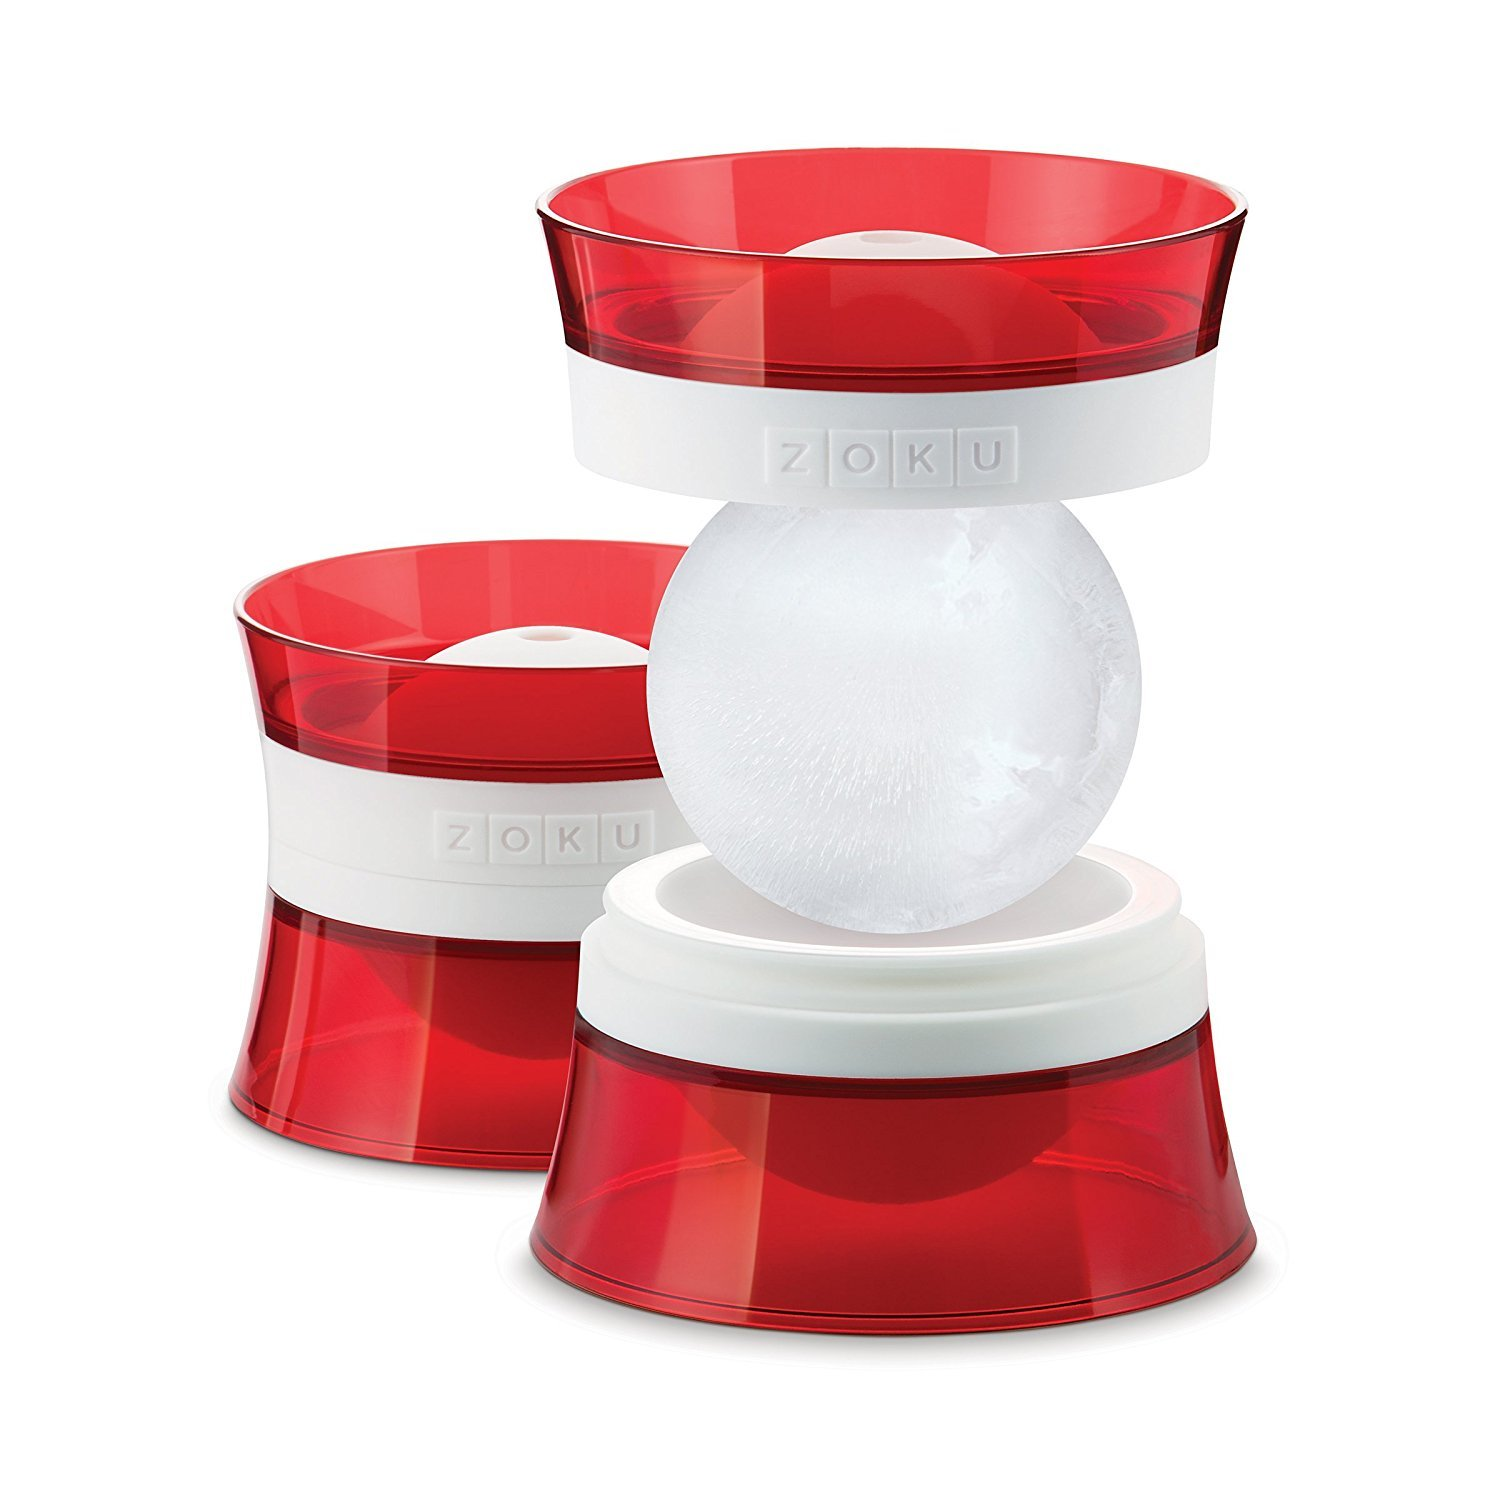 Set of 2/ Molds, Red and White ZK118 Zoku Ice Balls